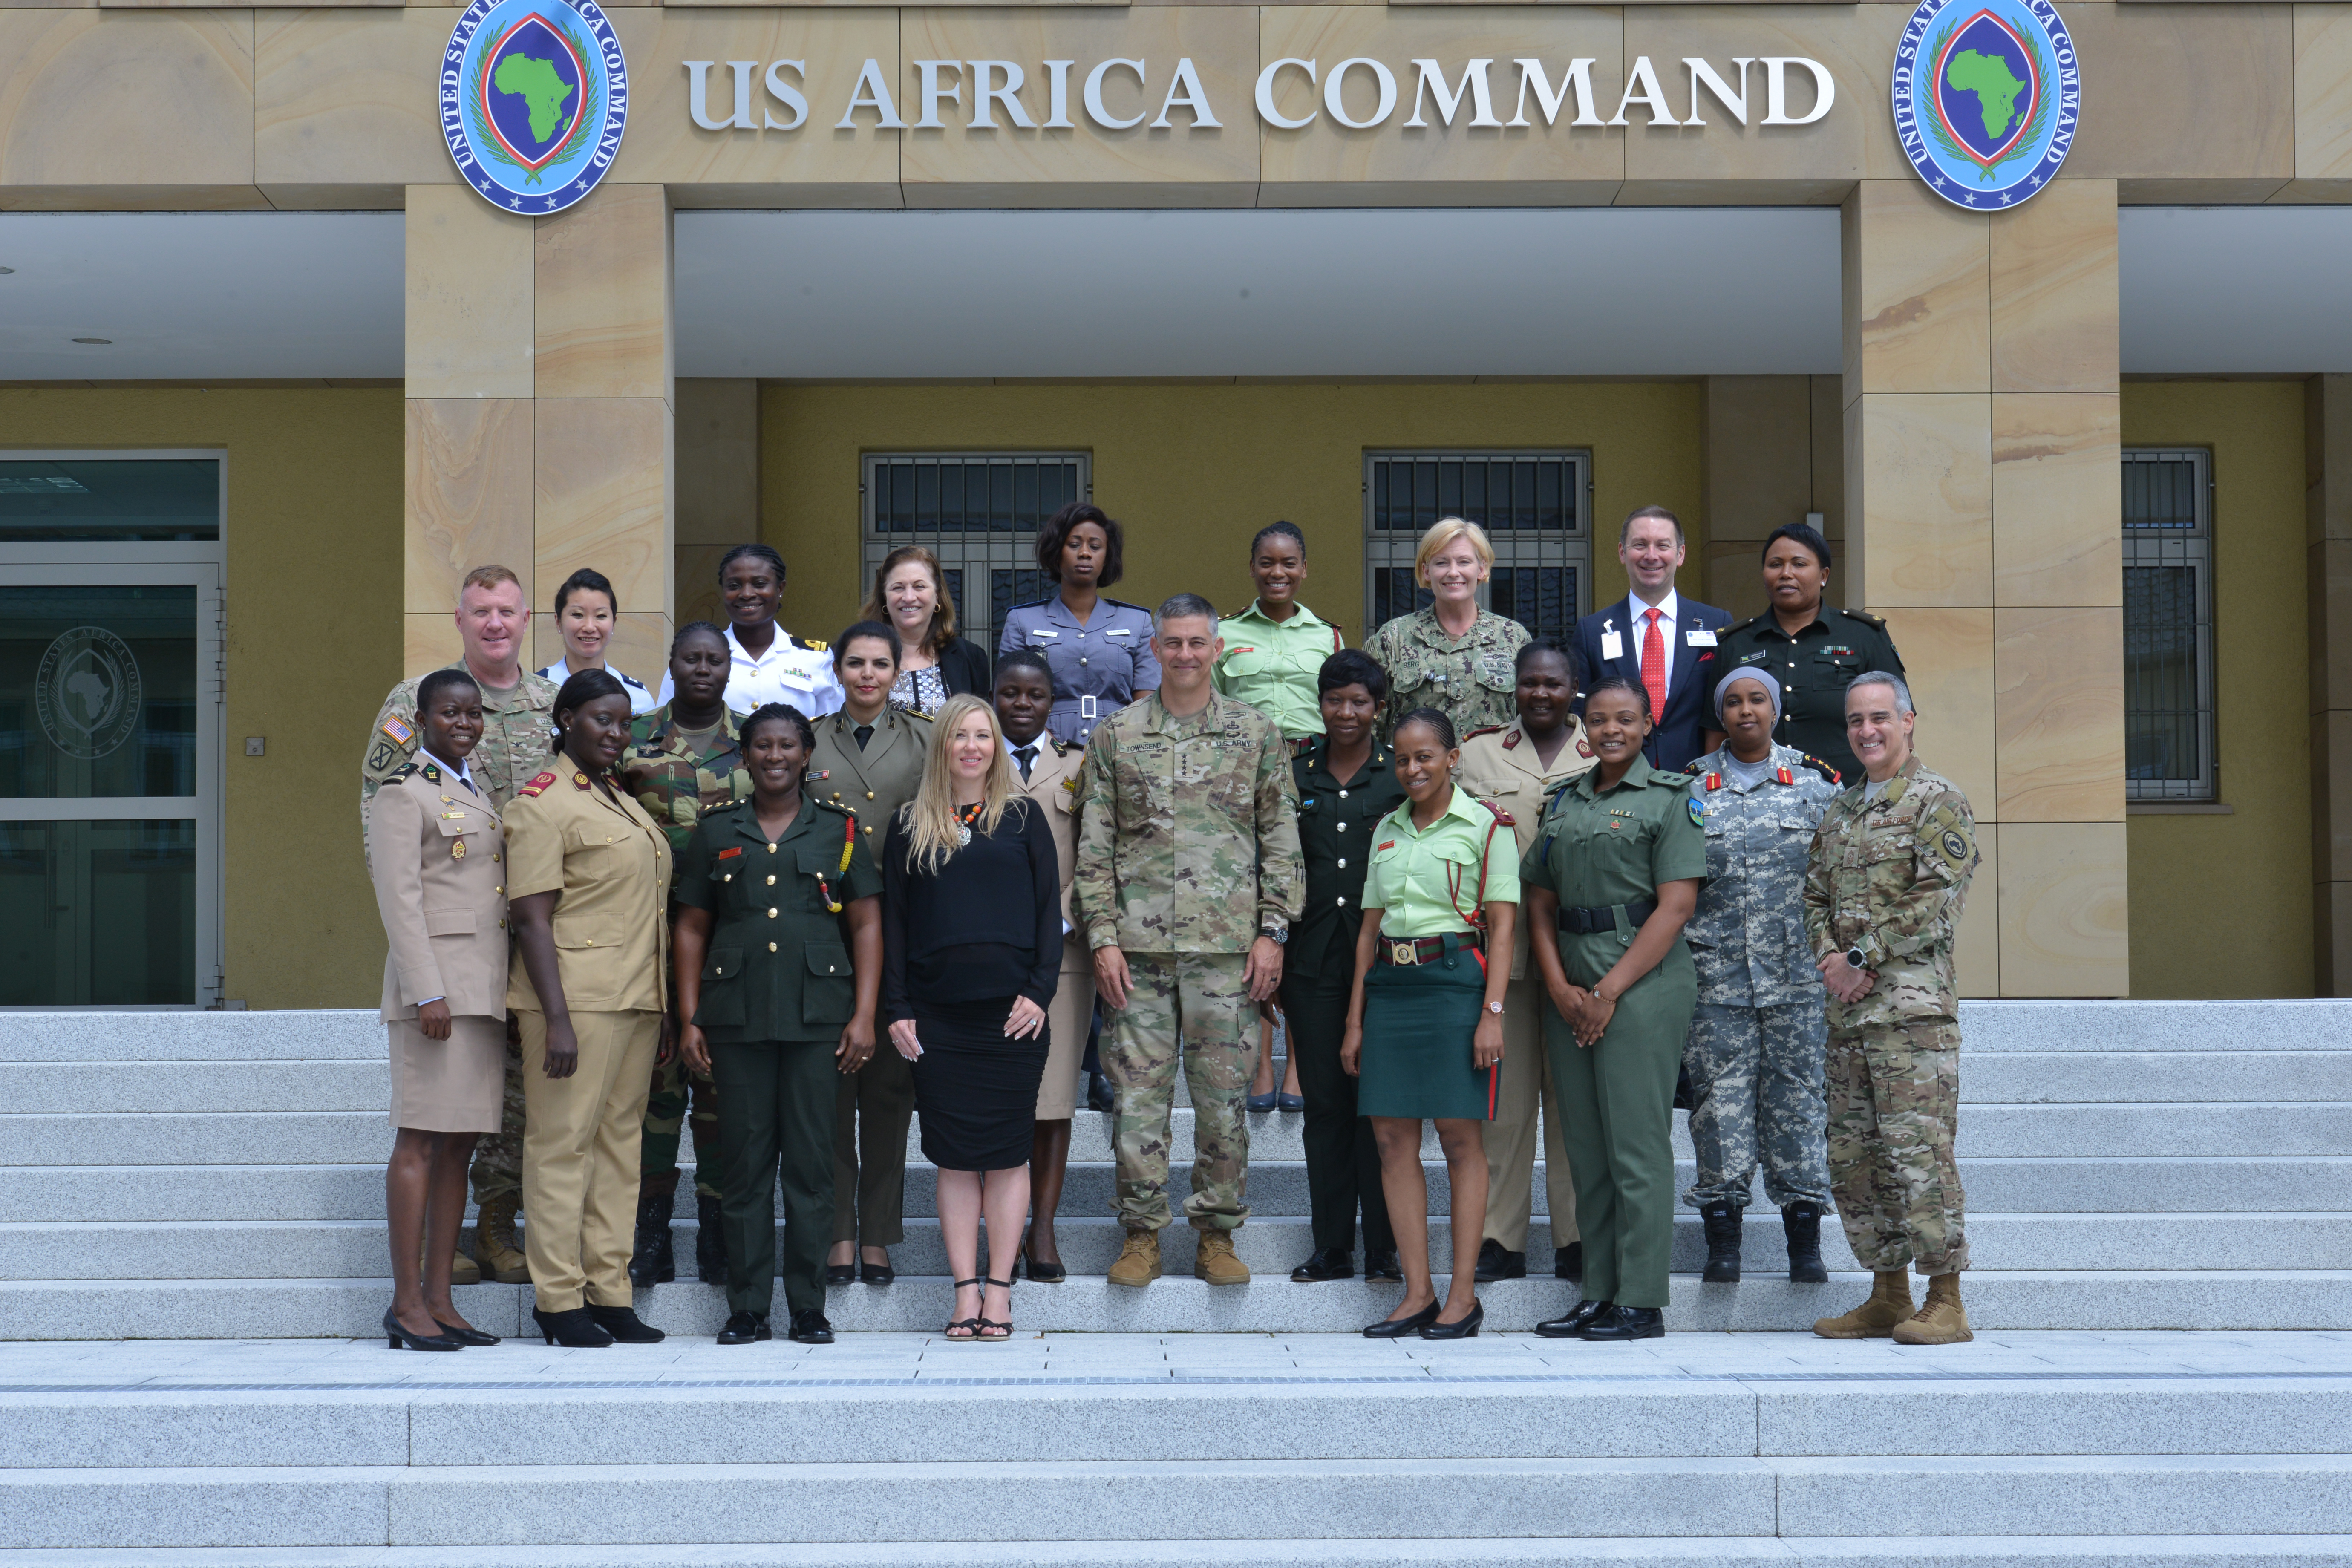 Participants of the 2019 U.S. Africa Command-sponsored, Women's Communication Symposium pose for a photo with AFRICOM Commanding General, Army Gen. Stephen J. Townsend, and AFRICOM Senior Enlisted Leader, Chief Master Sgt. Ramon Colon-Lopez, at the AFRICOM Headquarters, Aug. 2, 2019. 